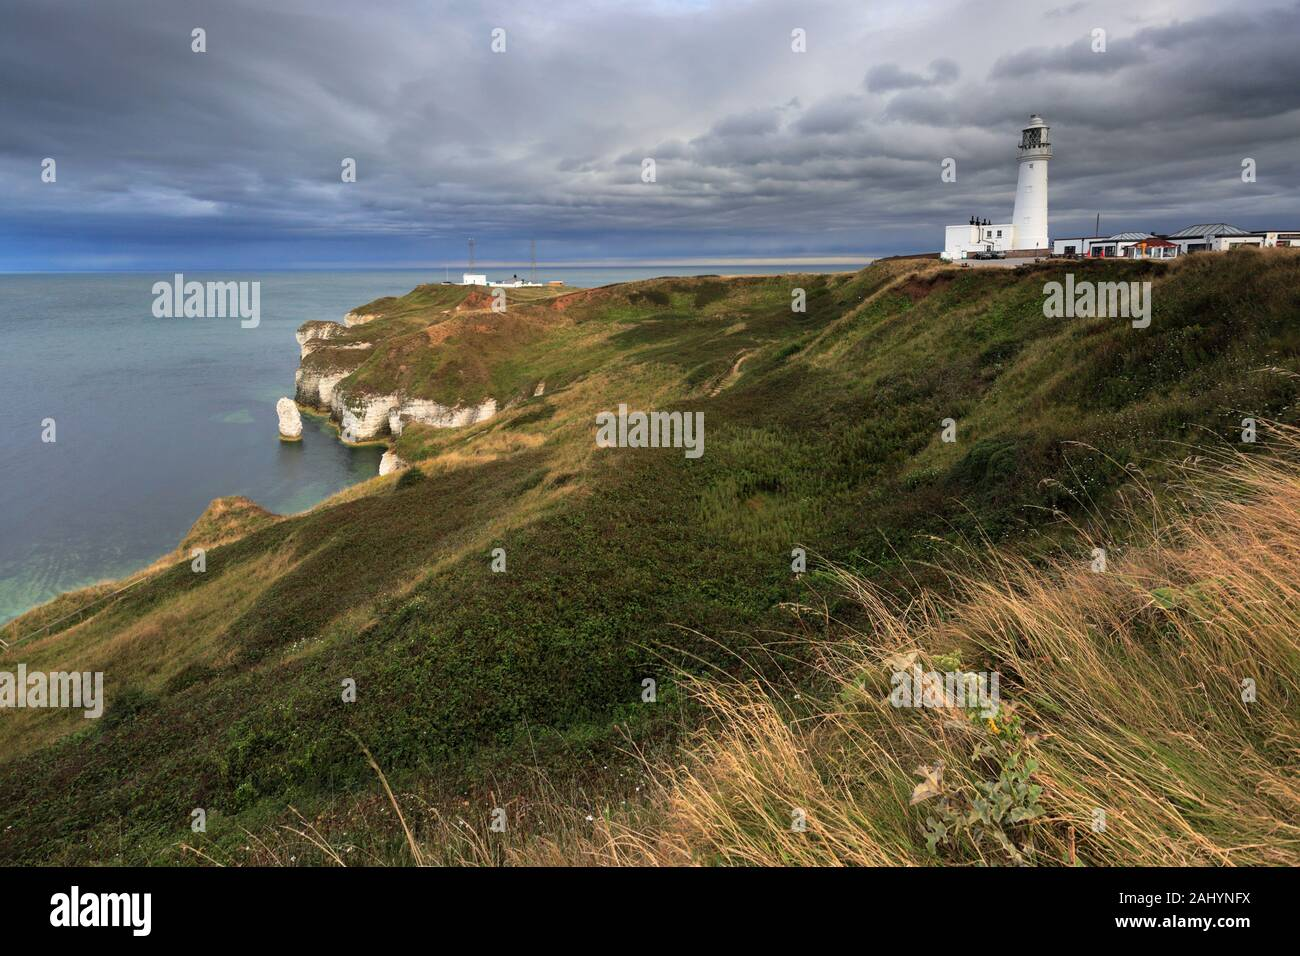 Dramatic clouds over the Chalk cliffs at Flamborough Head, East Riding of Yorkshire, England, UK Stock Photo